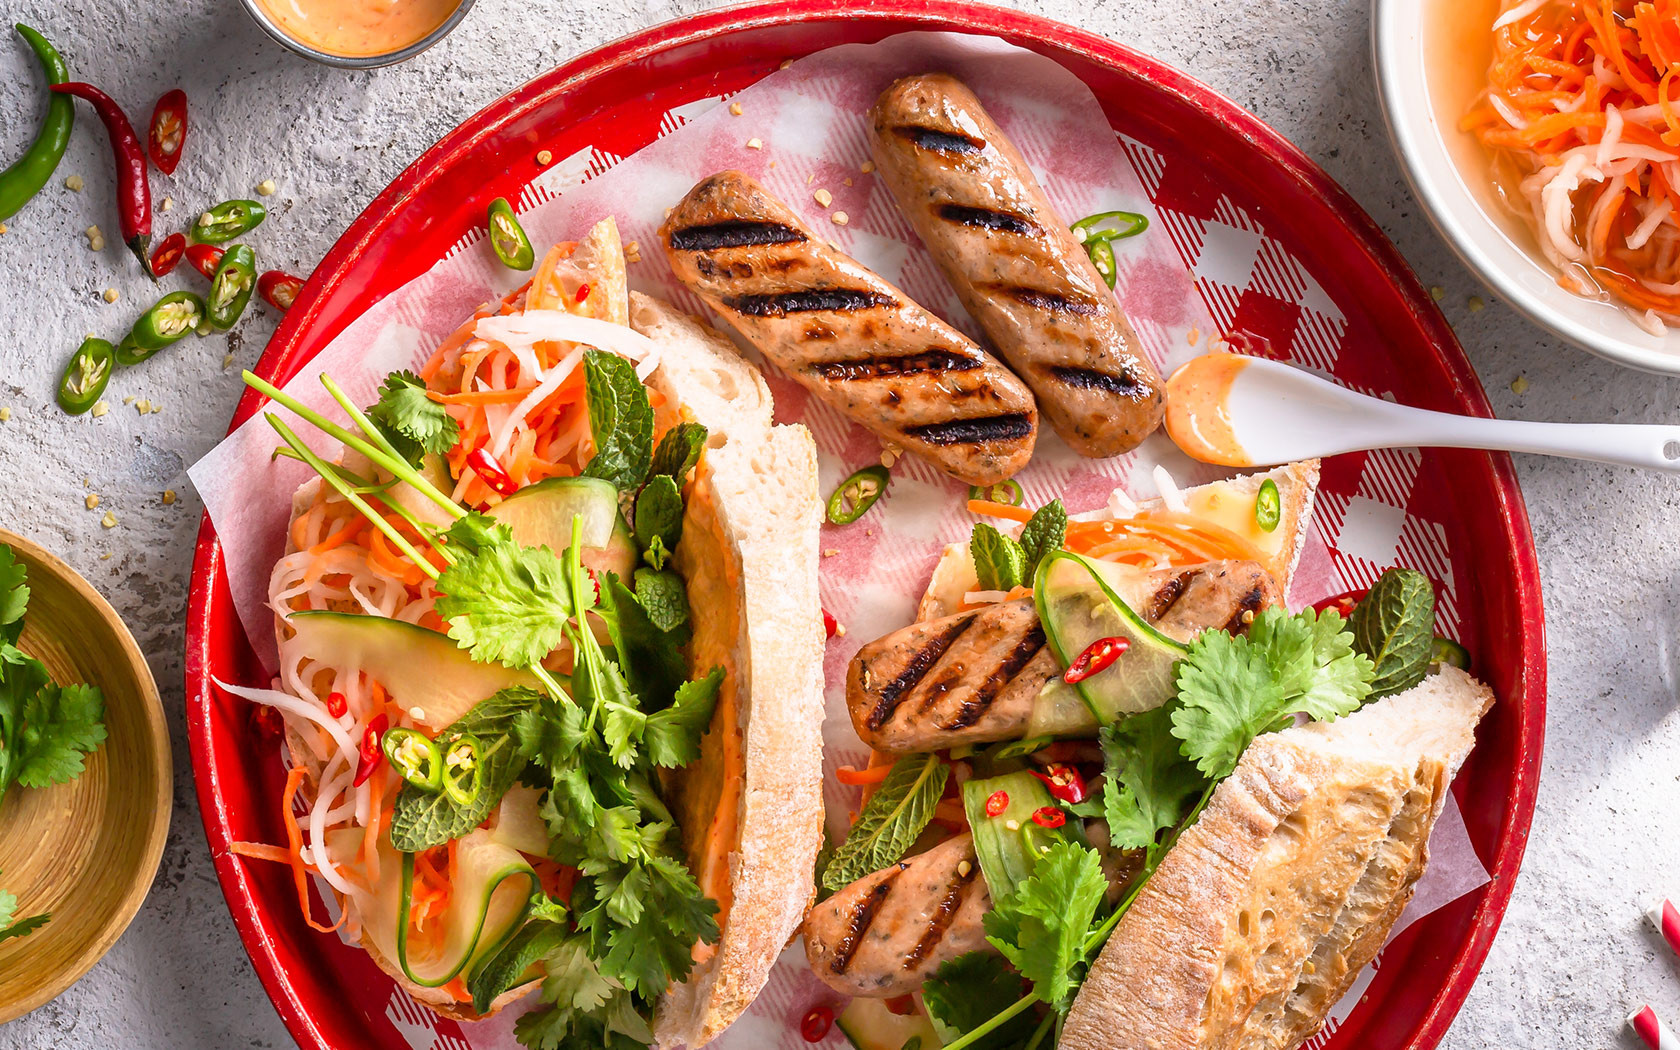 Meatless Banh Mi hot dogs